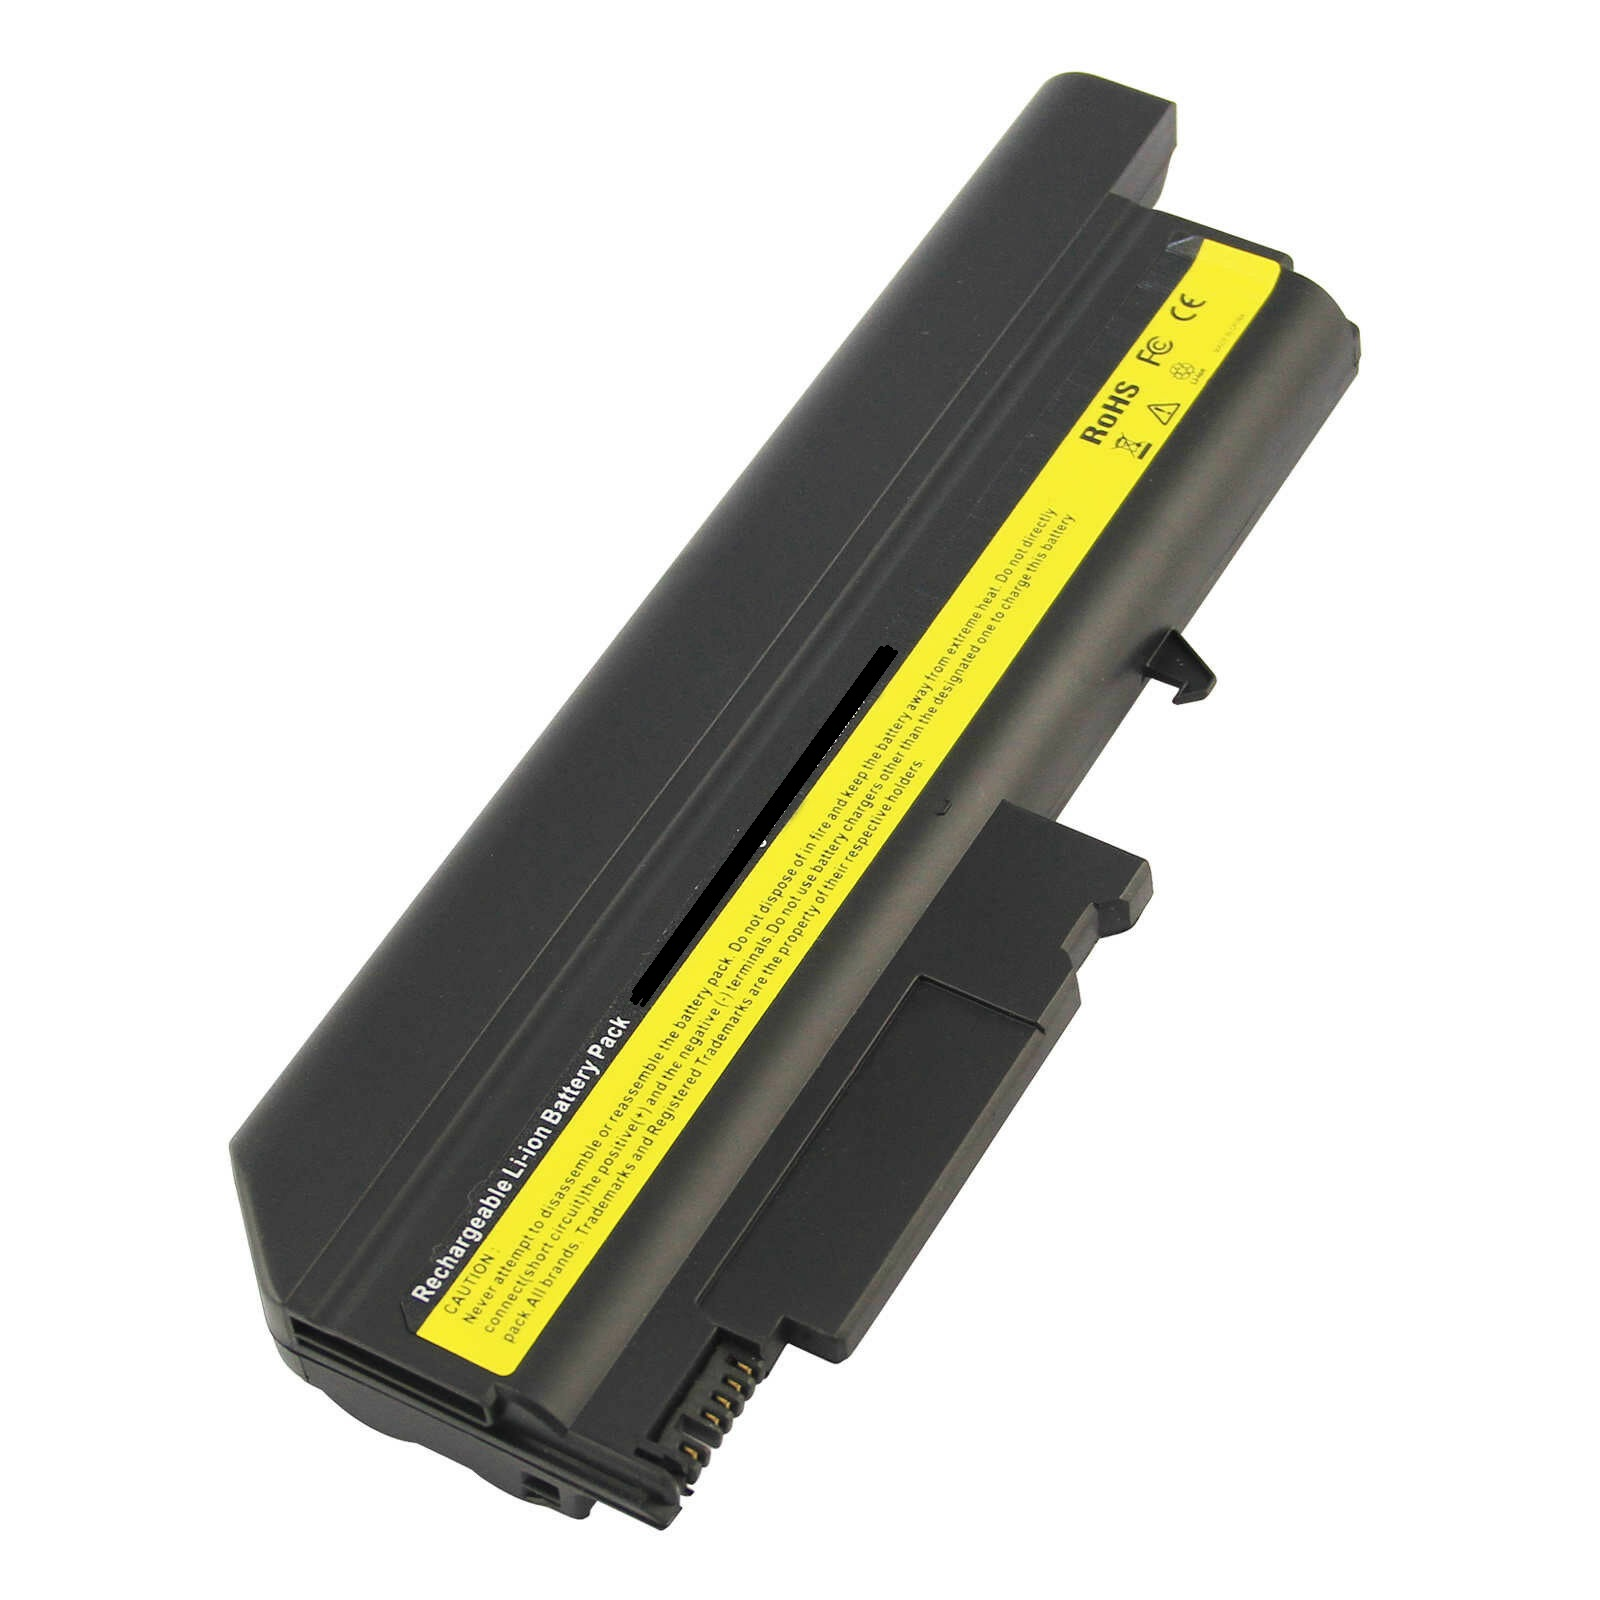 IBM 08K8192 ThinkPad Lithium-Ion Battery